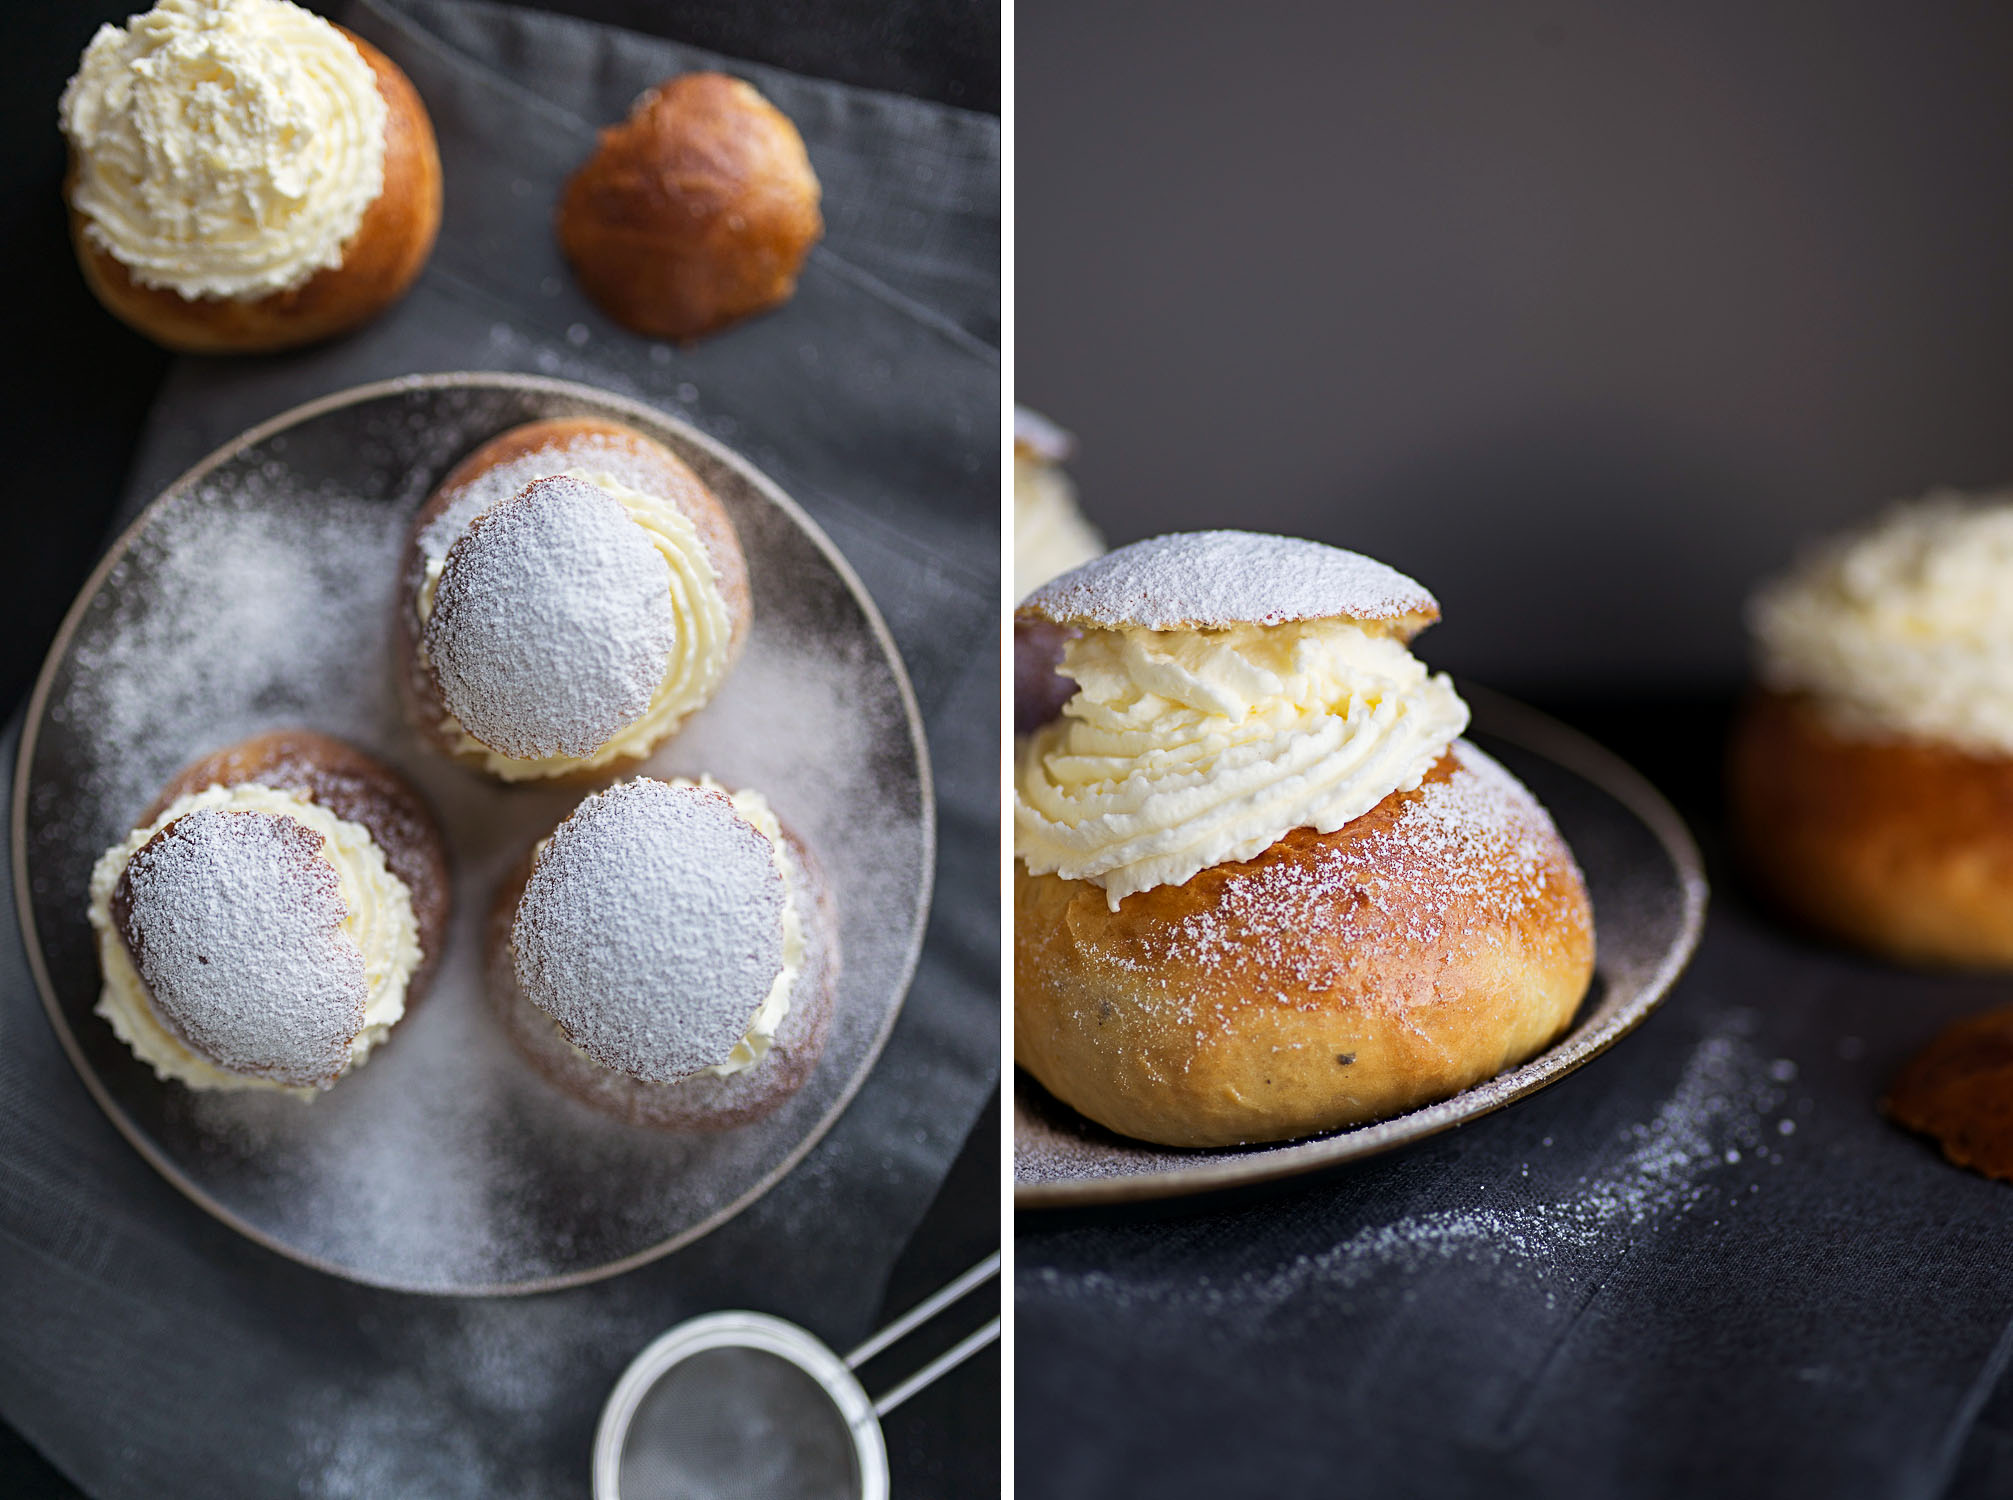 Semlor - Swedish Lent Buns {photography by Mondomulia - recipe by Rachel Khoo}